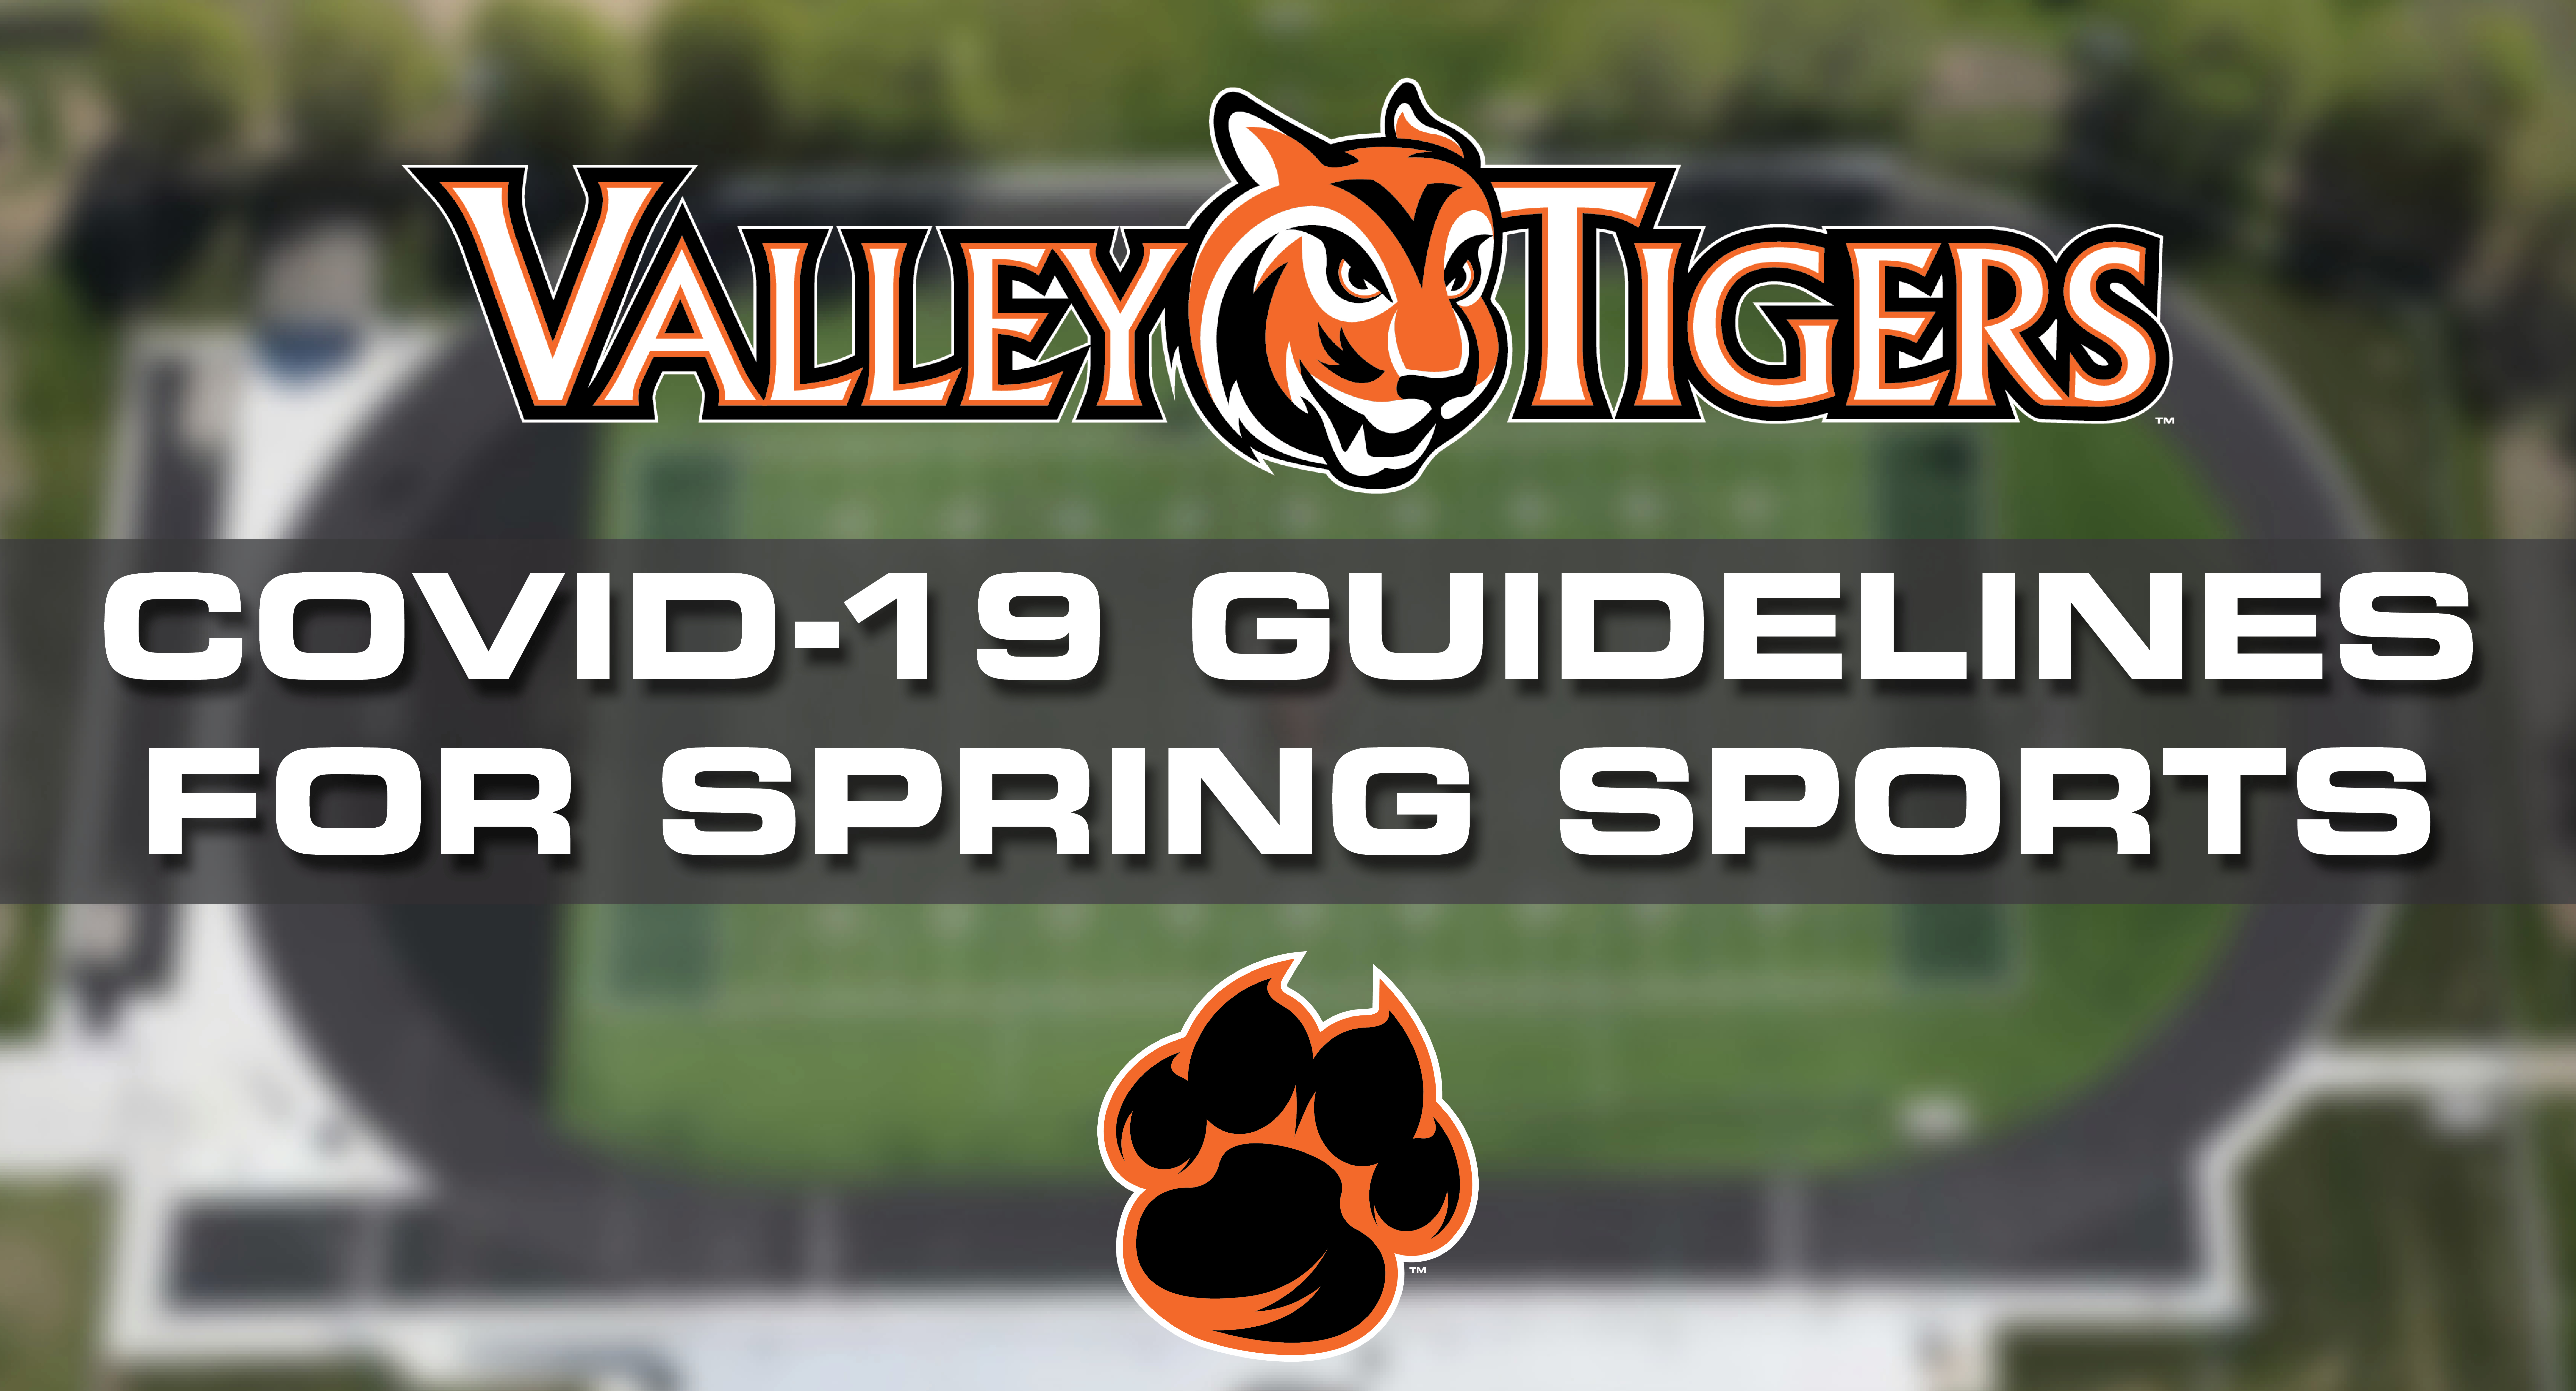 valley tigers covid-19 spring sports promo